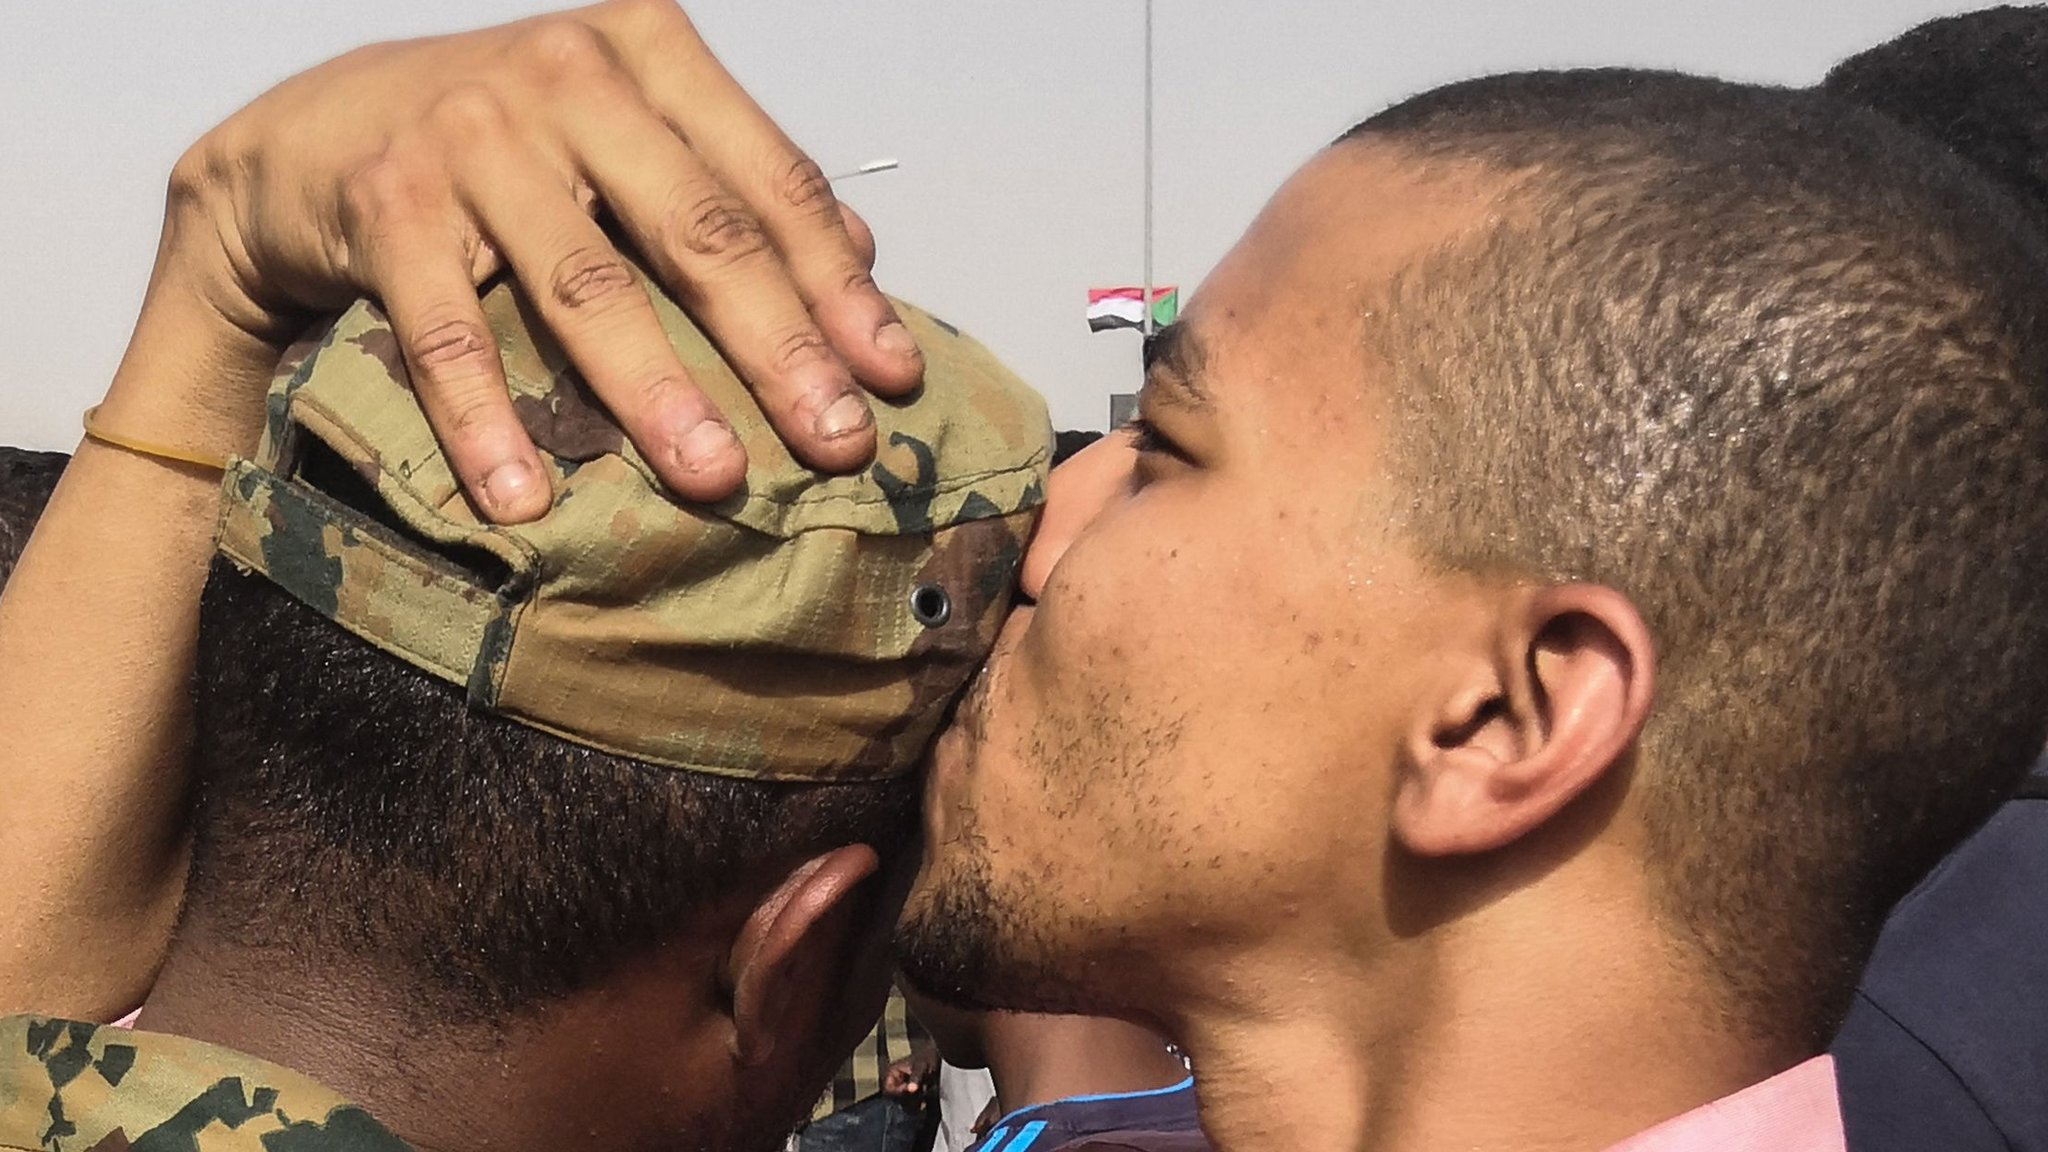 Kissing soldiers and rolling joints